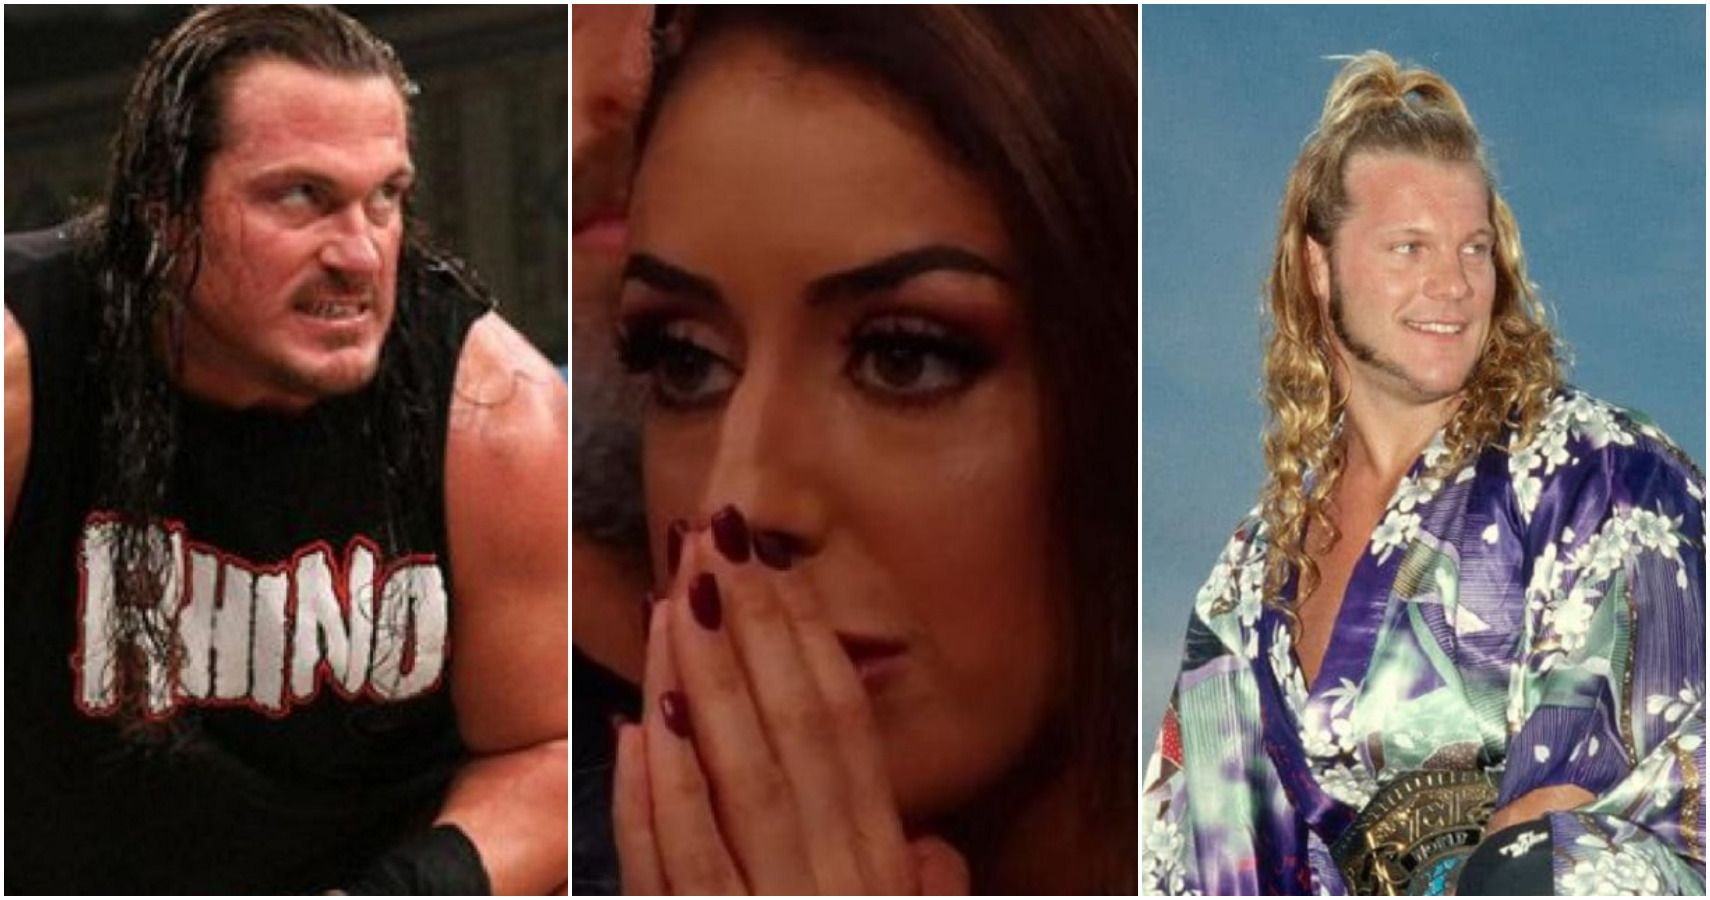 10 Backstage Stories About Britt Baker We Can't Believe